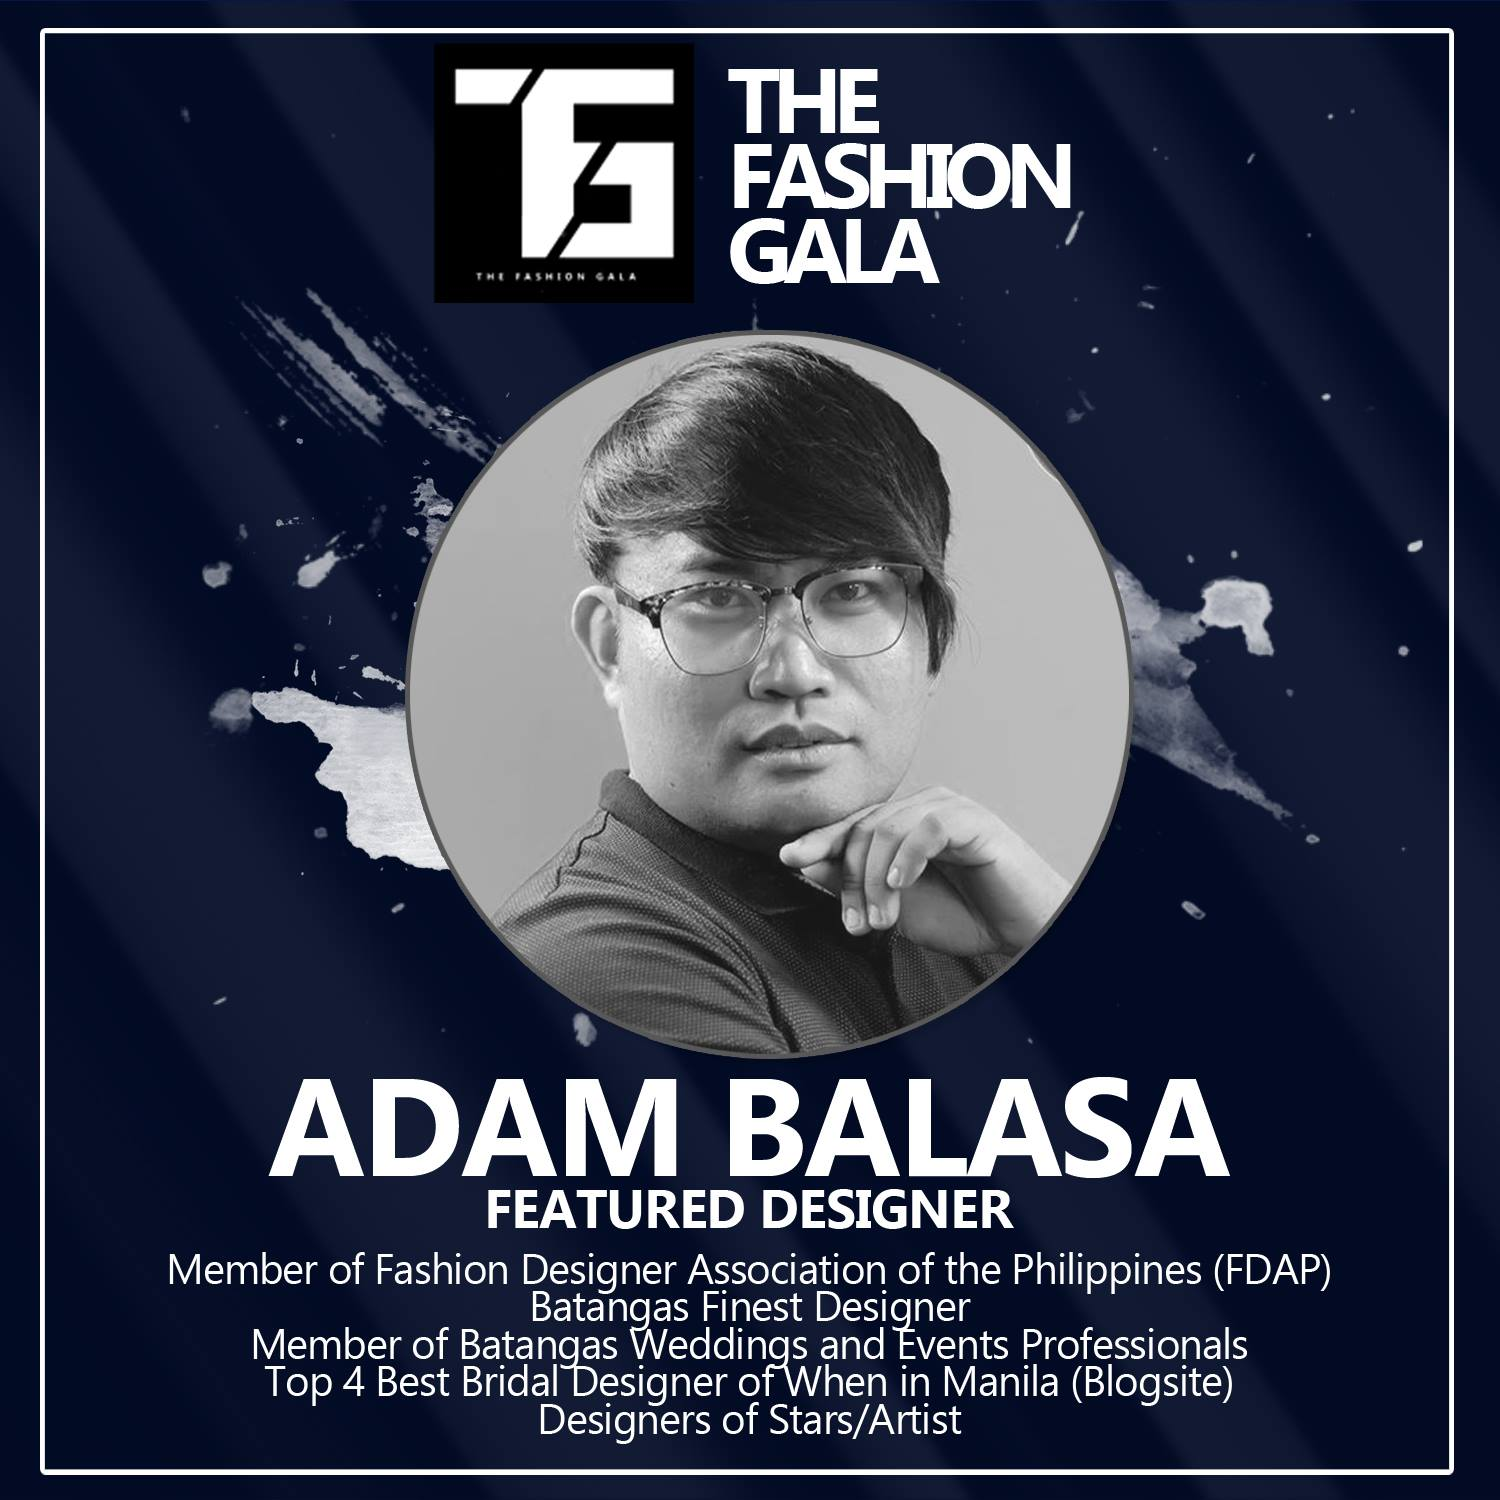 MTP Production Like This Page · June 5 · Adam Balasa a member of Fashion Designer Association of the Philippines (FDAP), Member of Batangas Weddings and Events Professionals, Designers of know artist and stars, A Batangas Finest Designer and awarded as top 4 Best Bridal Designer of When in Manila (Blogsite). Our First Featured Designer on our upcoming FASHION SHOW on June 25, 2017 entitled THE FASHION GALA WEDDINGS (5PM) and THE FASHION GALA BEYOND STREET (8PM) at Elements at Centris, Edsa Corner Quezon Avenue Quezon City. #TFGweddings #TFGbeyondstreet #TheFashionGala #MTPproduction — with Adam Balasa Couture.